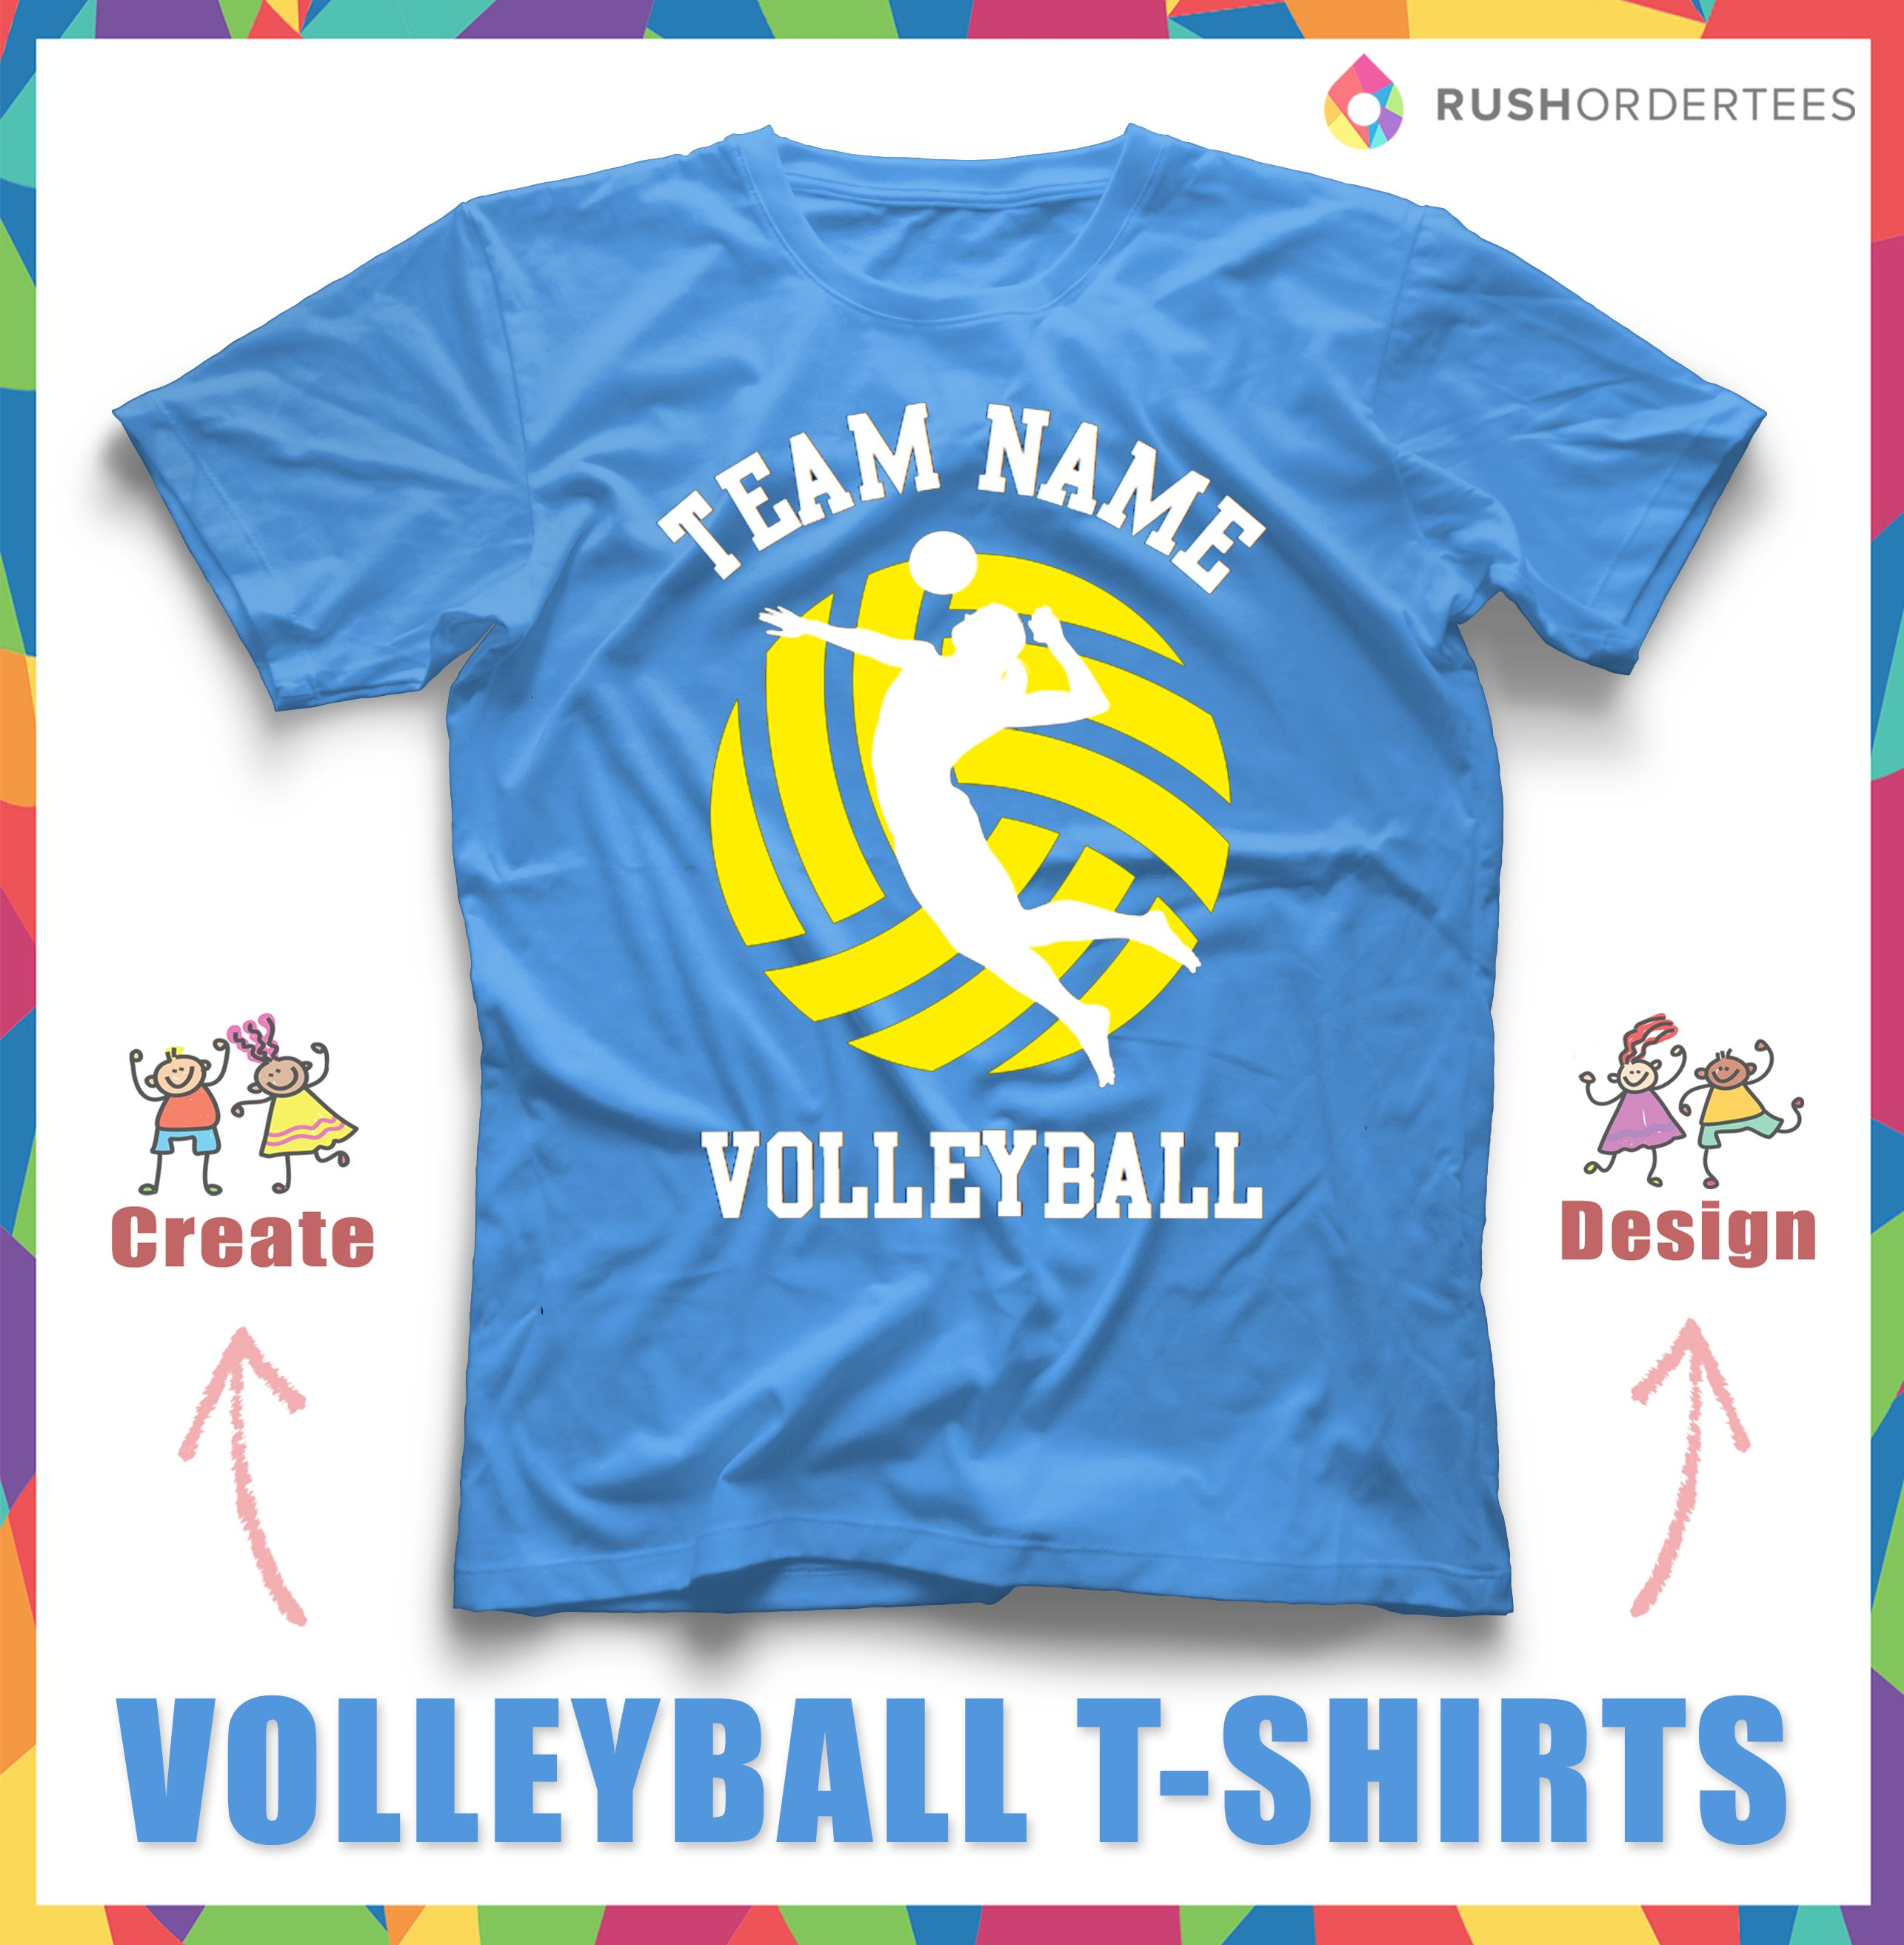 Volleyball Custom T Shirt Design Idea Edit This Custom T Shirt With